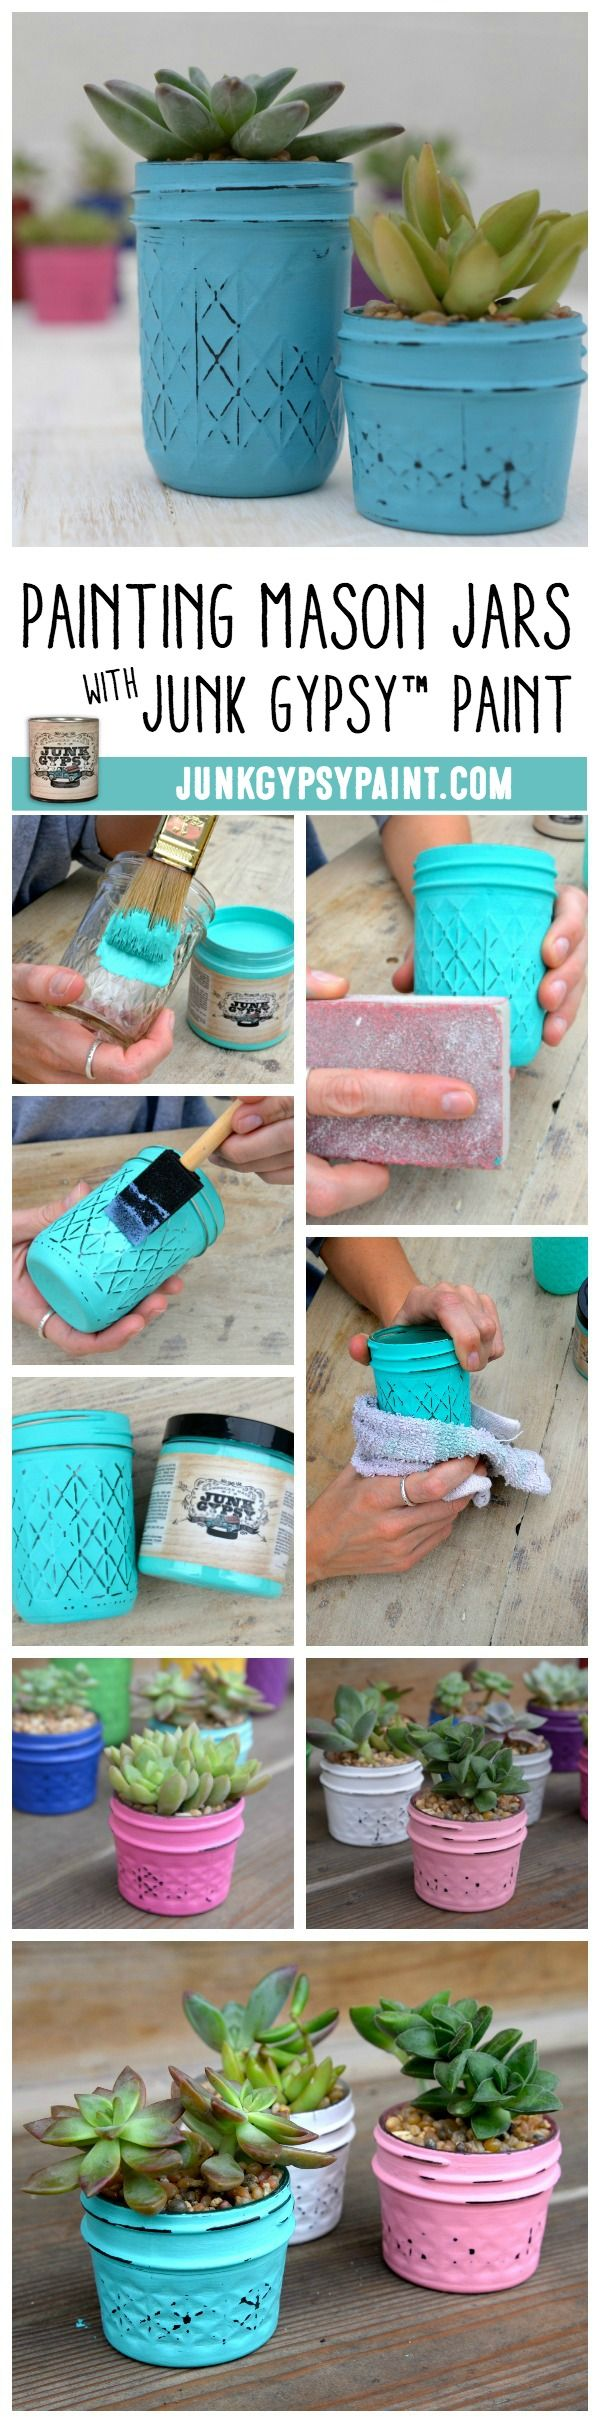 Painting Mason Jars with Junk Gypsy™ Paint